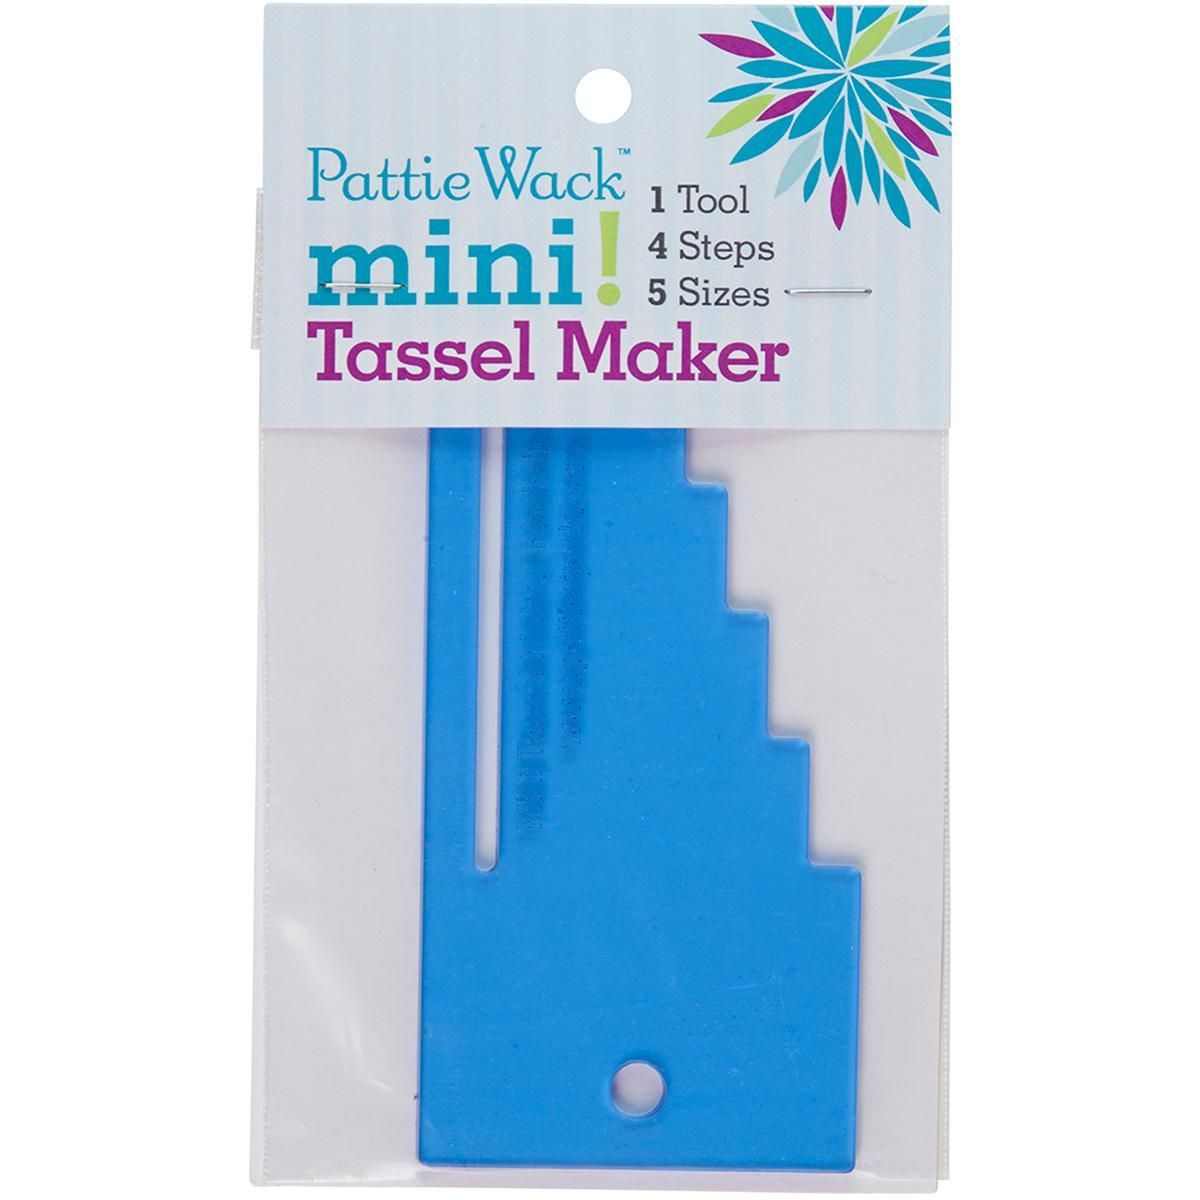 Pattiewack Designs Mini Tassel Maker 5.5 X2.5 -